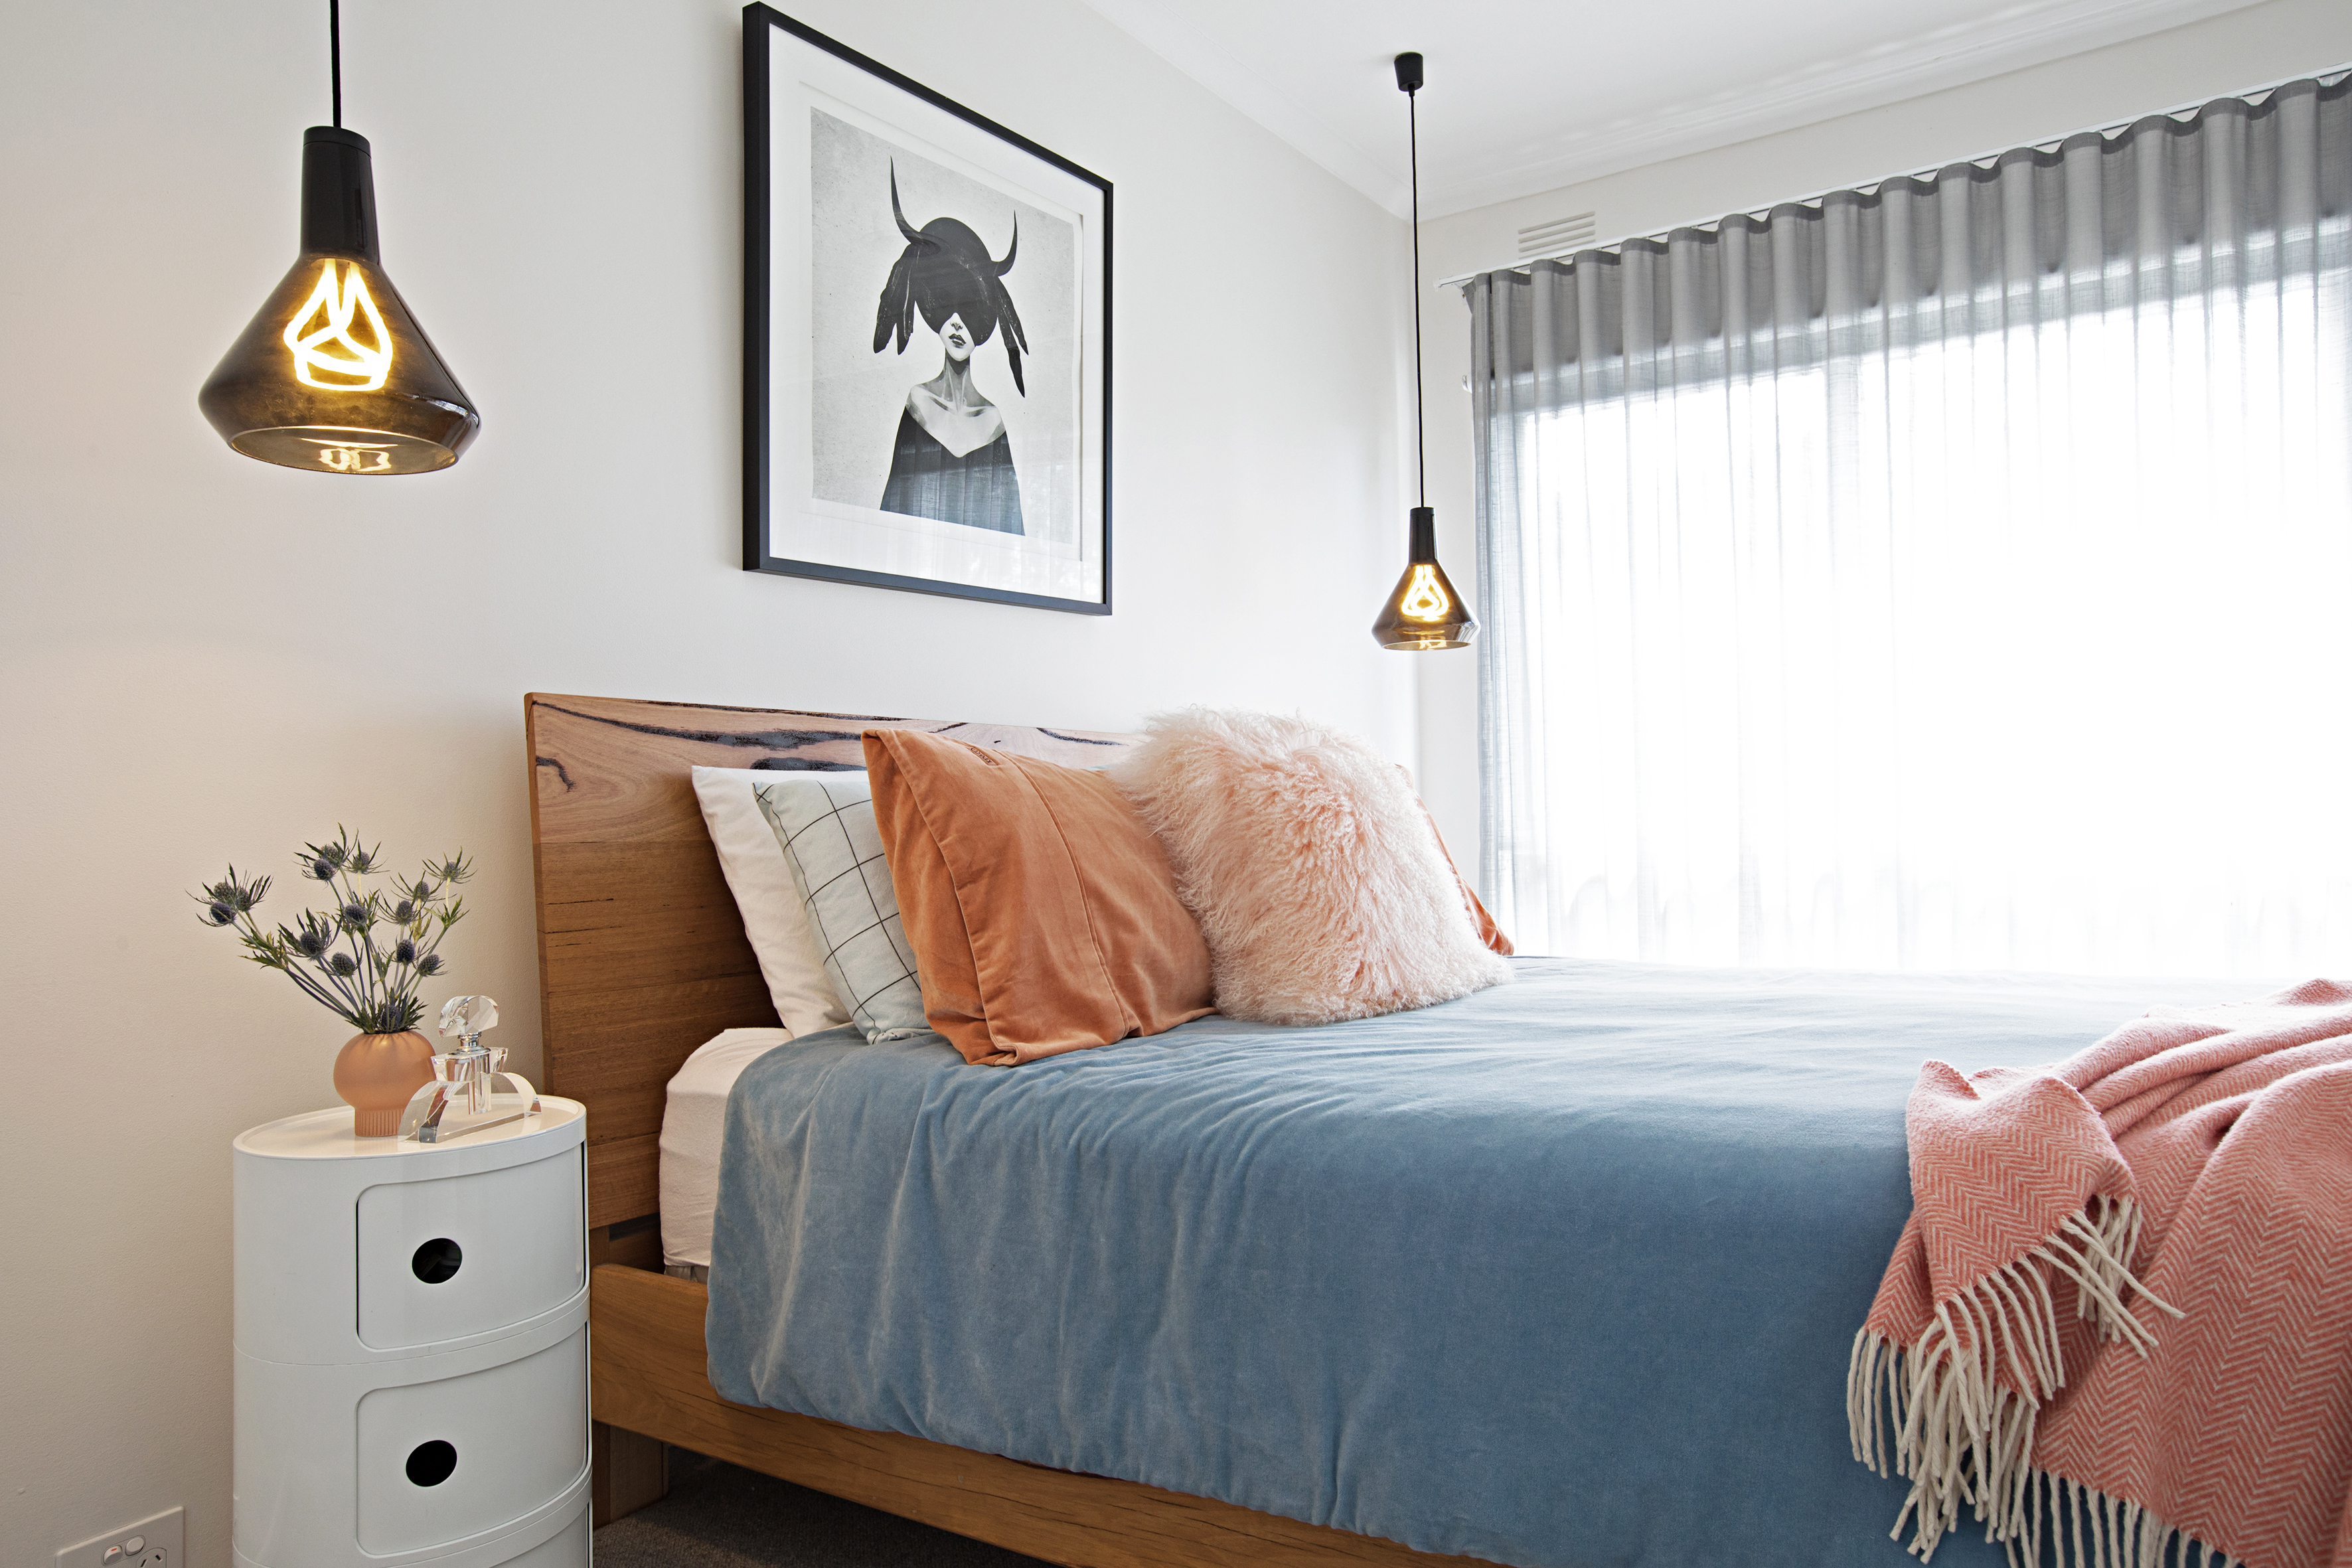 15 Small Bedroom Ideas - How to Decorate a Small Bedroom